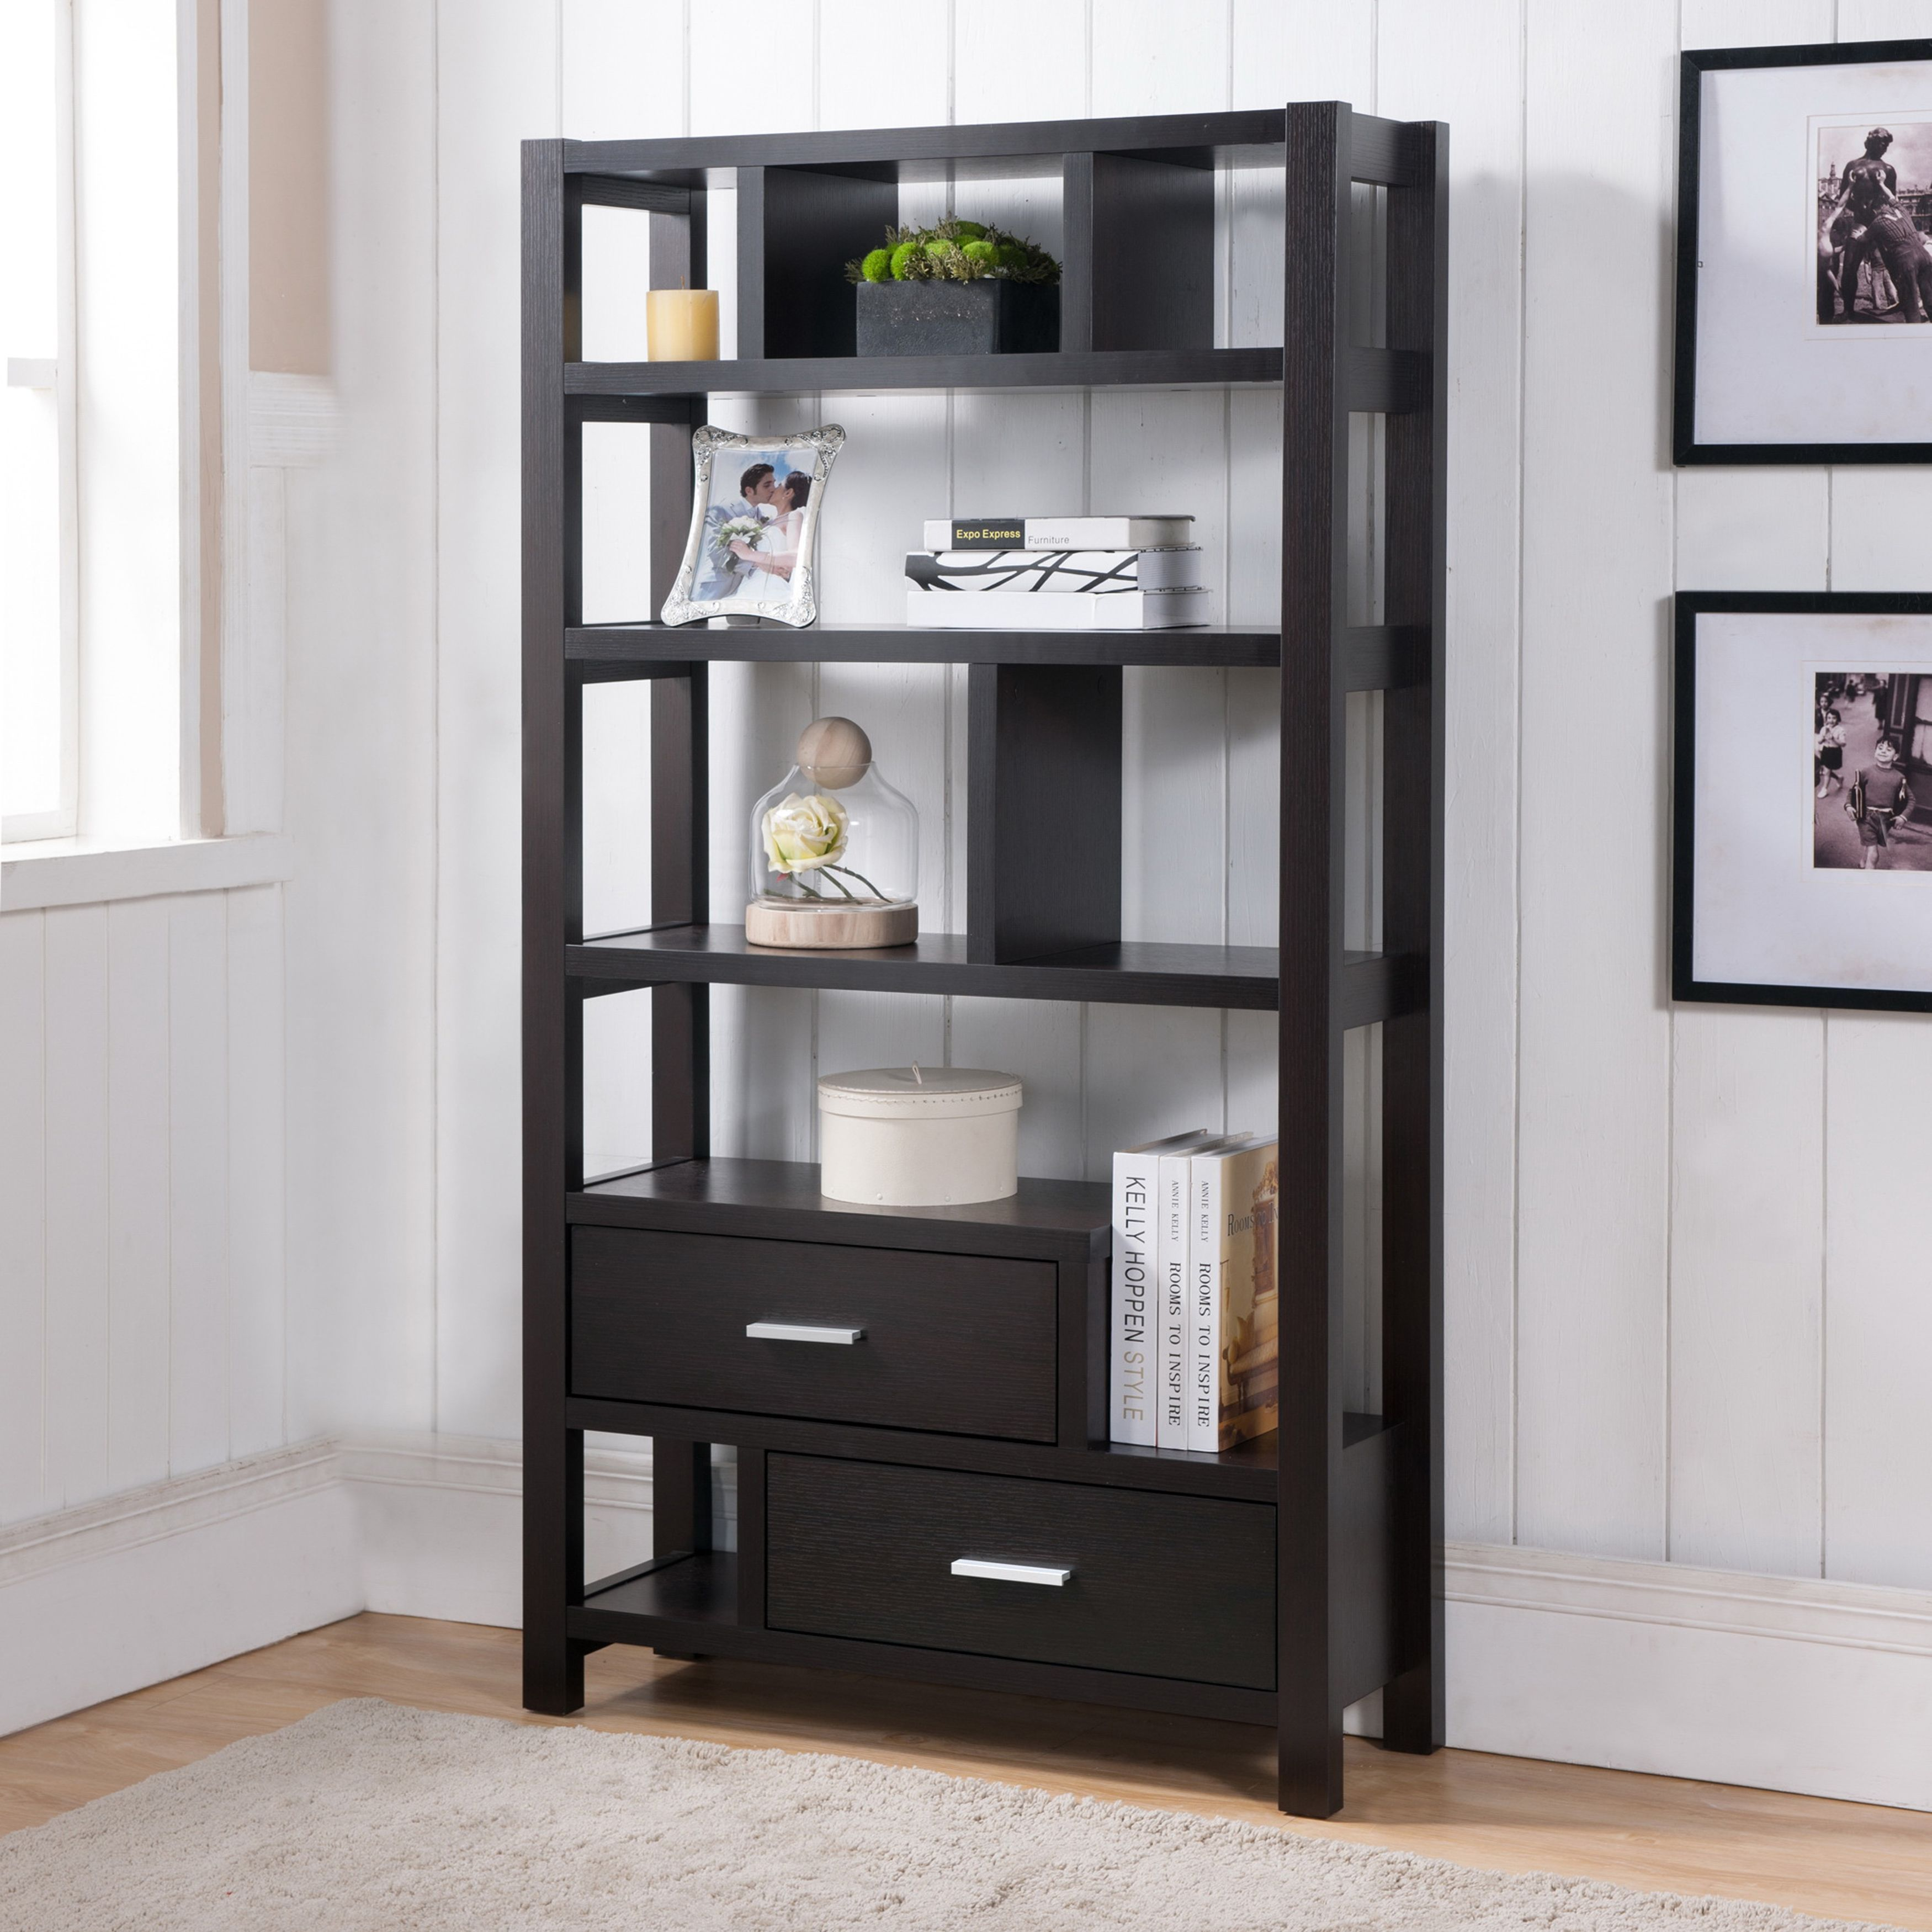 Buy Furniture Online Free Shipping: Buy Ladder From Overstock.com For Everyday Discount Prices